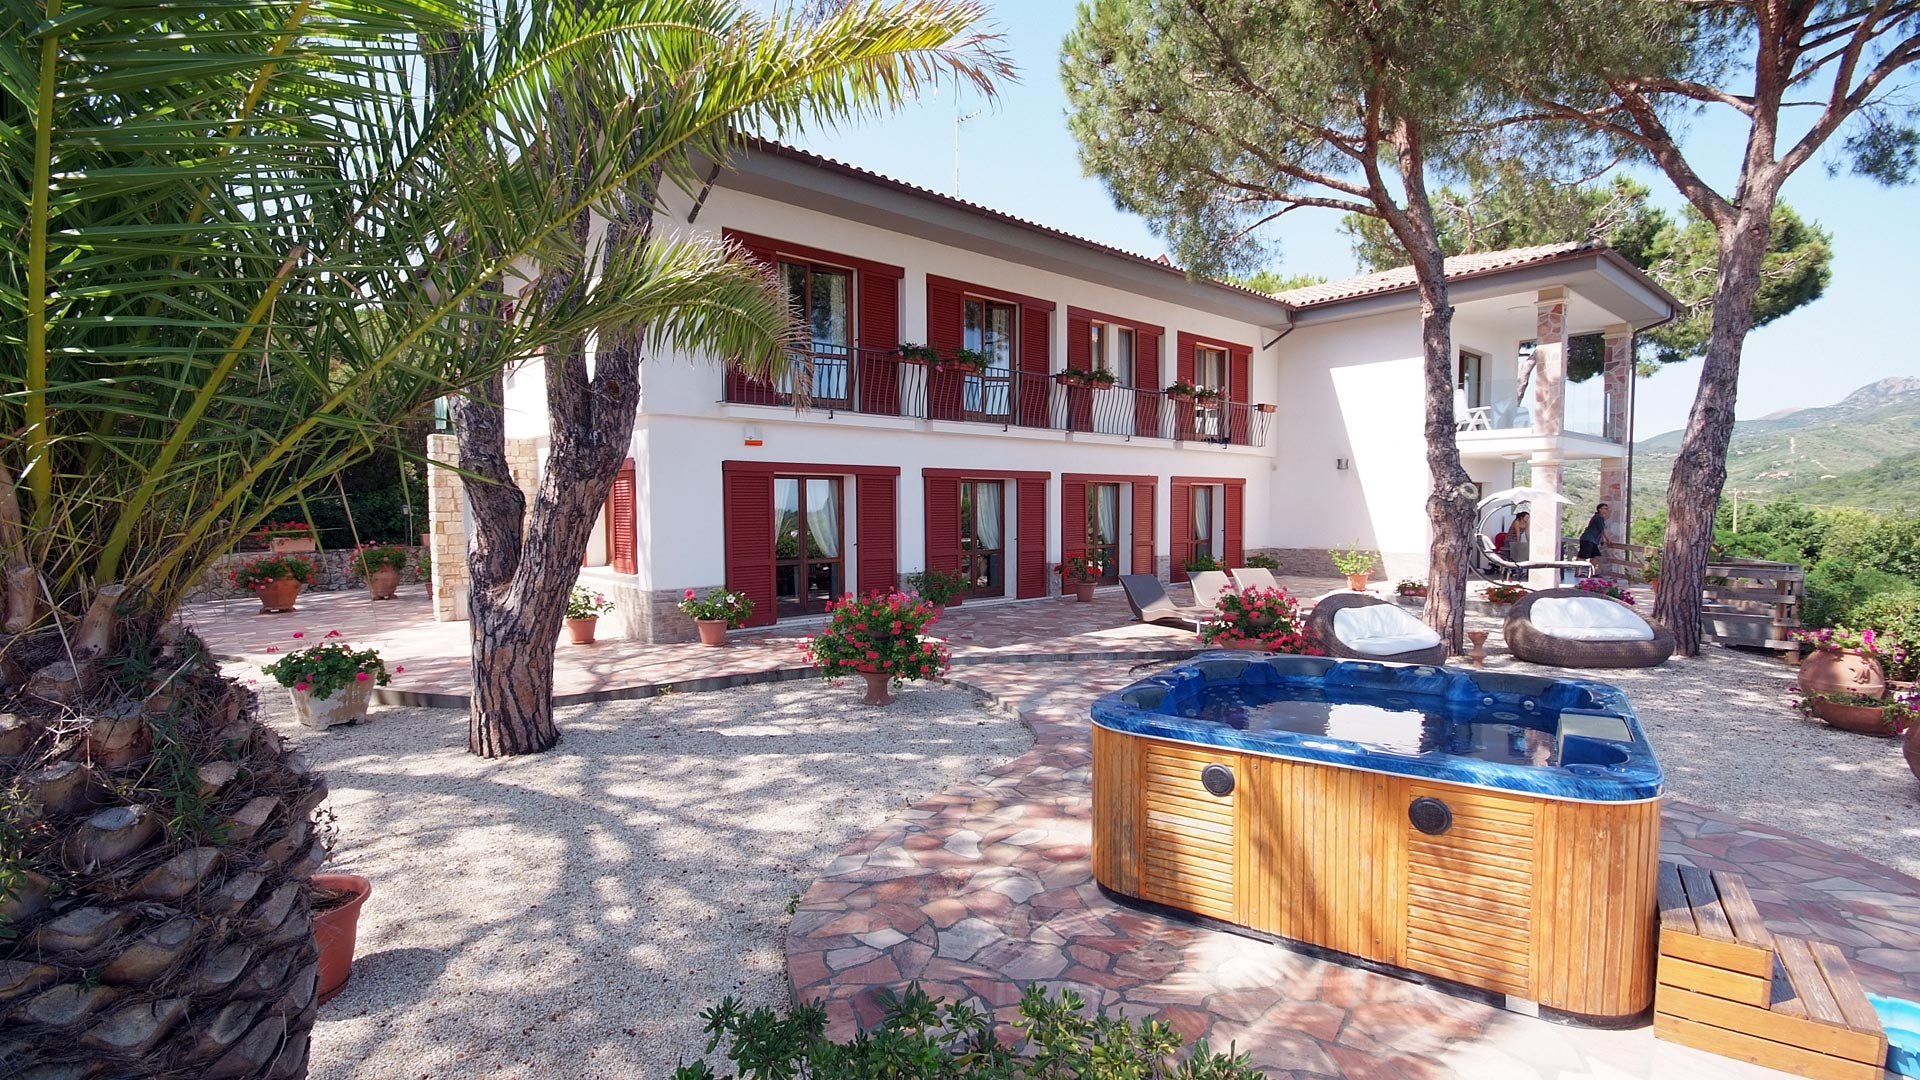 Hotel Il Caminetto Elba Elba Island Is Ideal For Trekking All Year Round